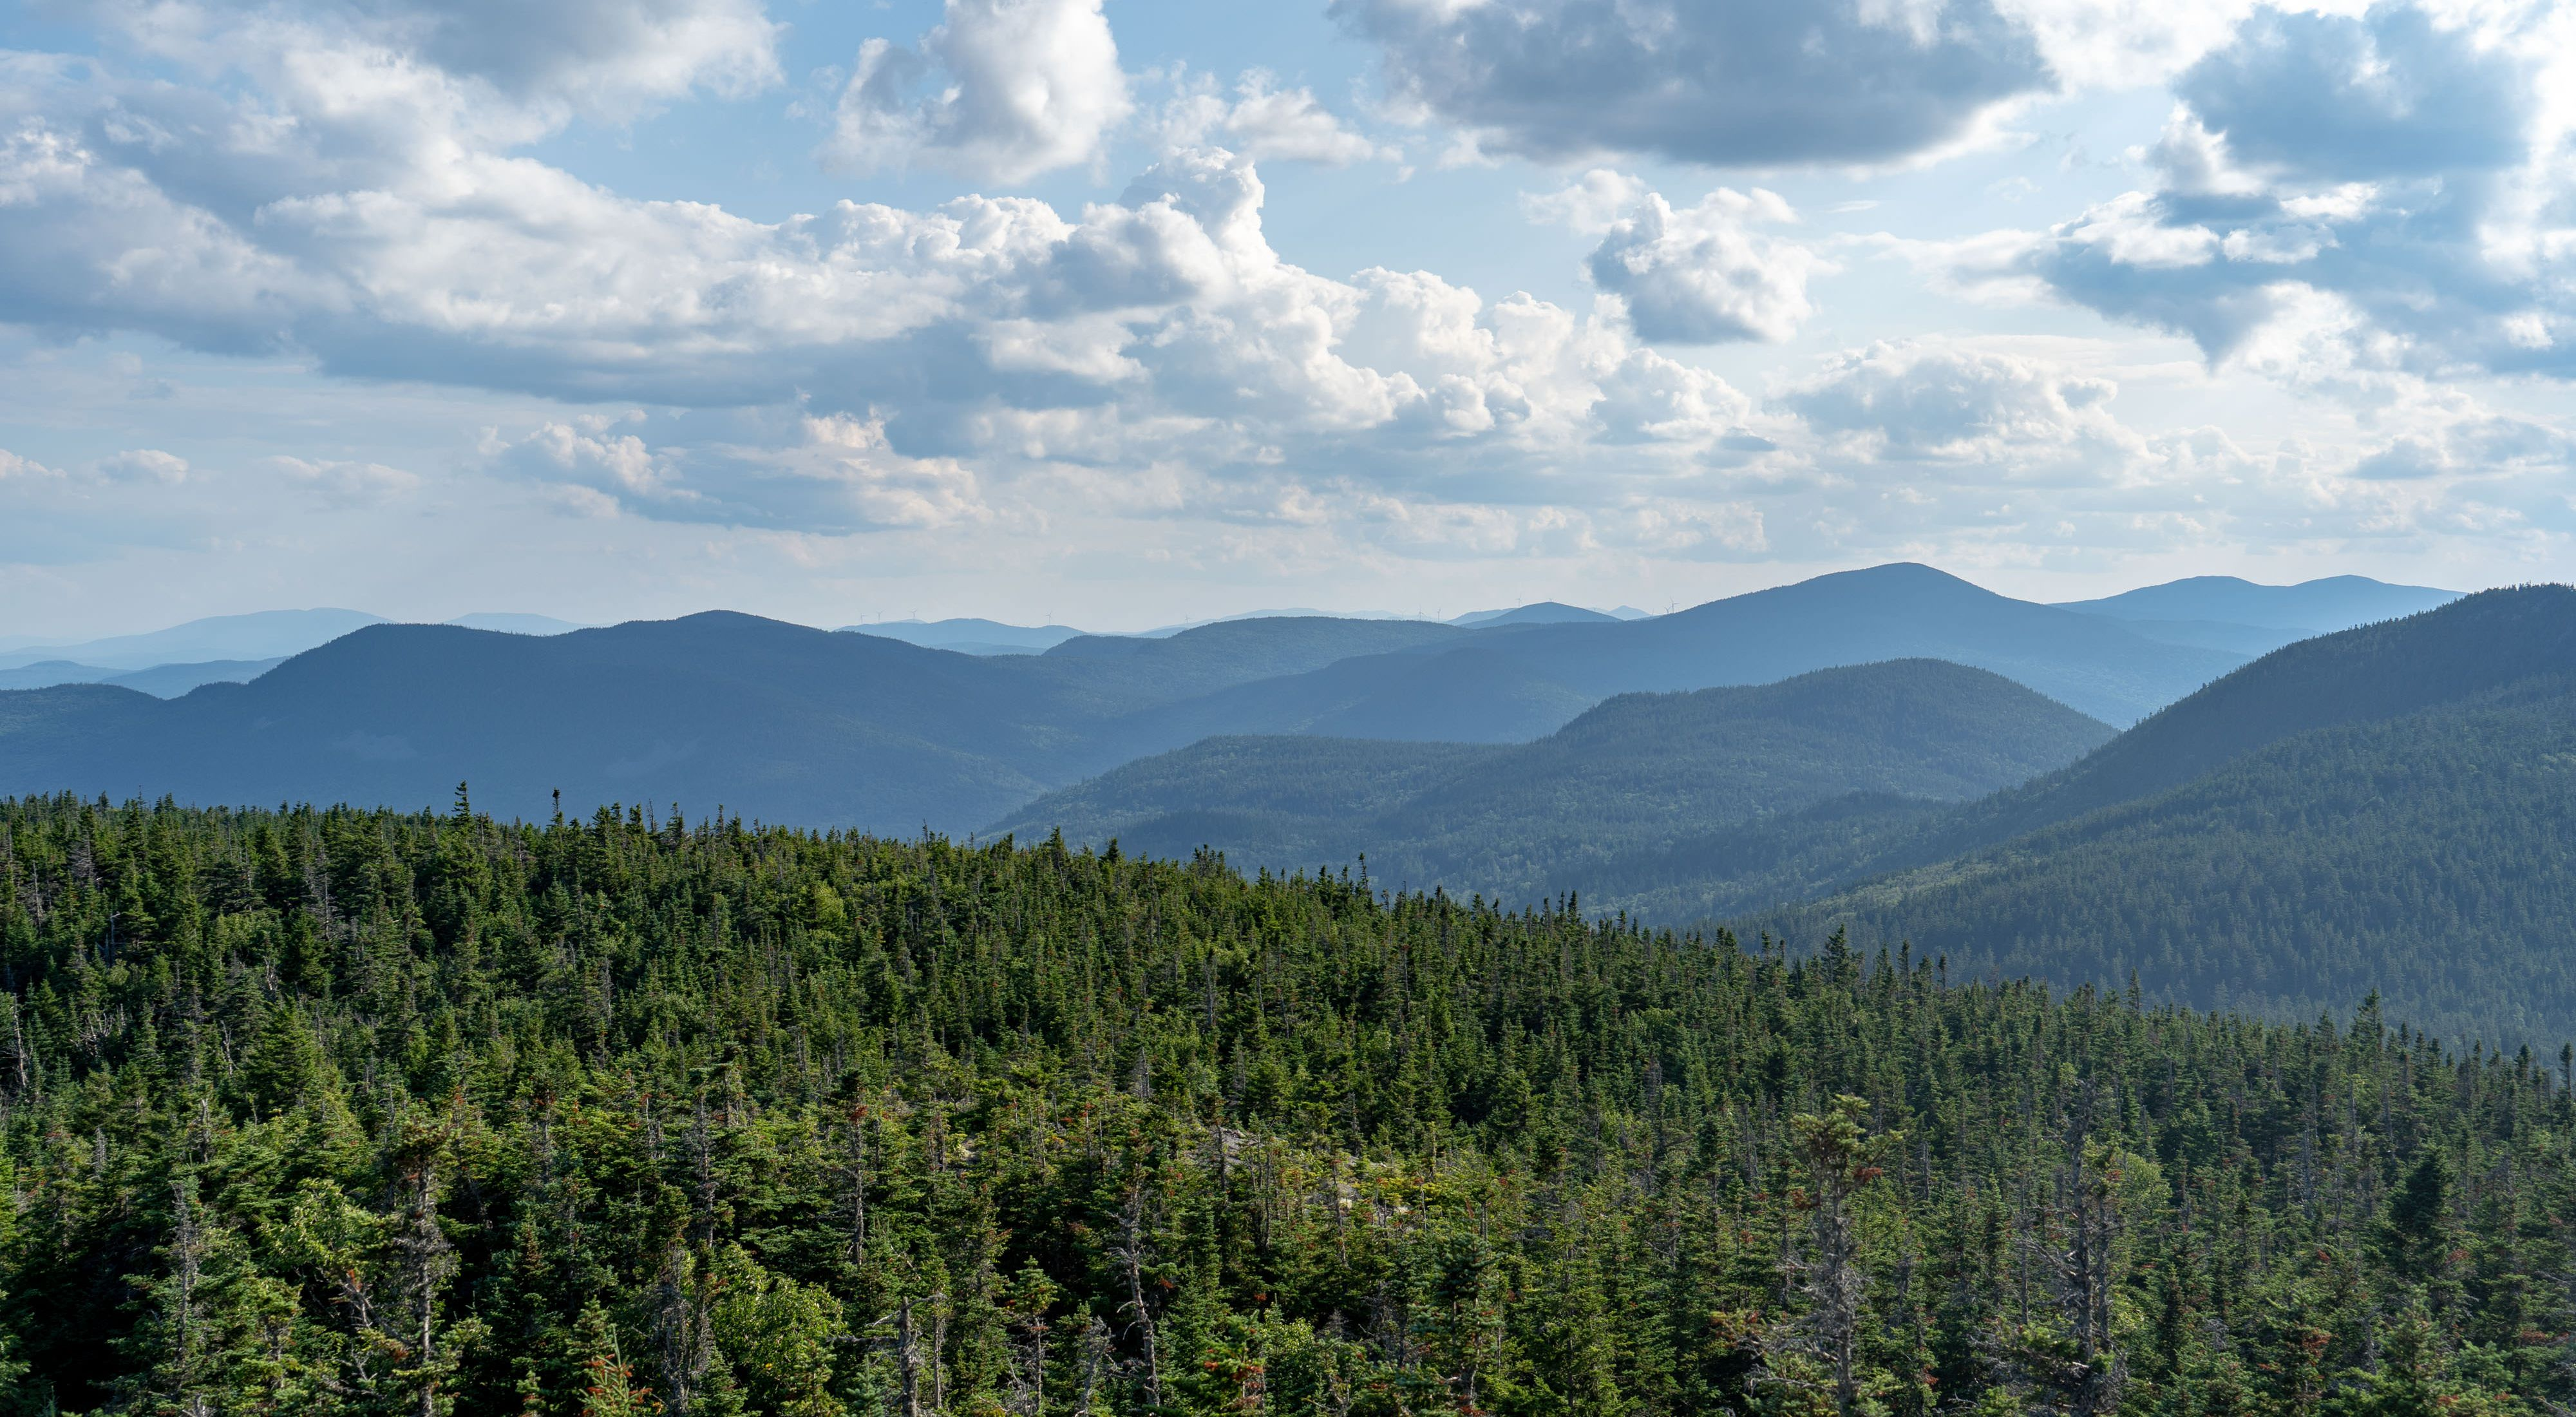 The view from Number 5 Mountain in Leuthold Preserve.